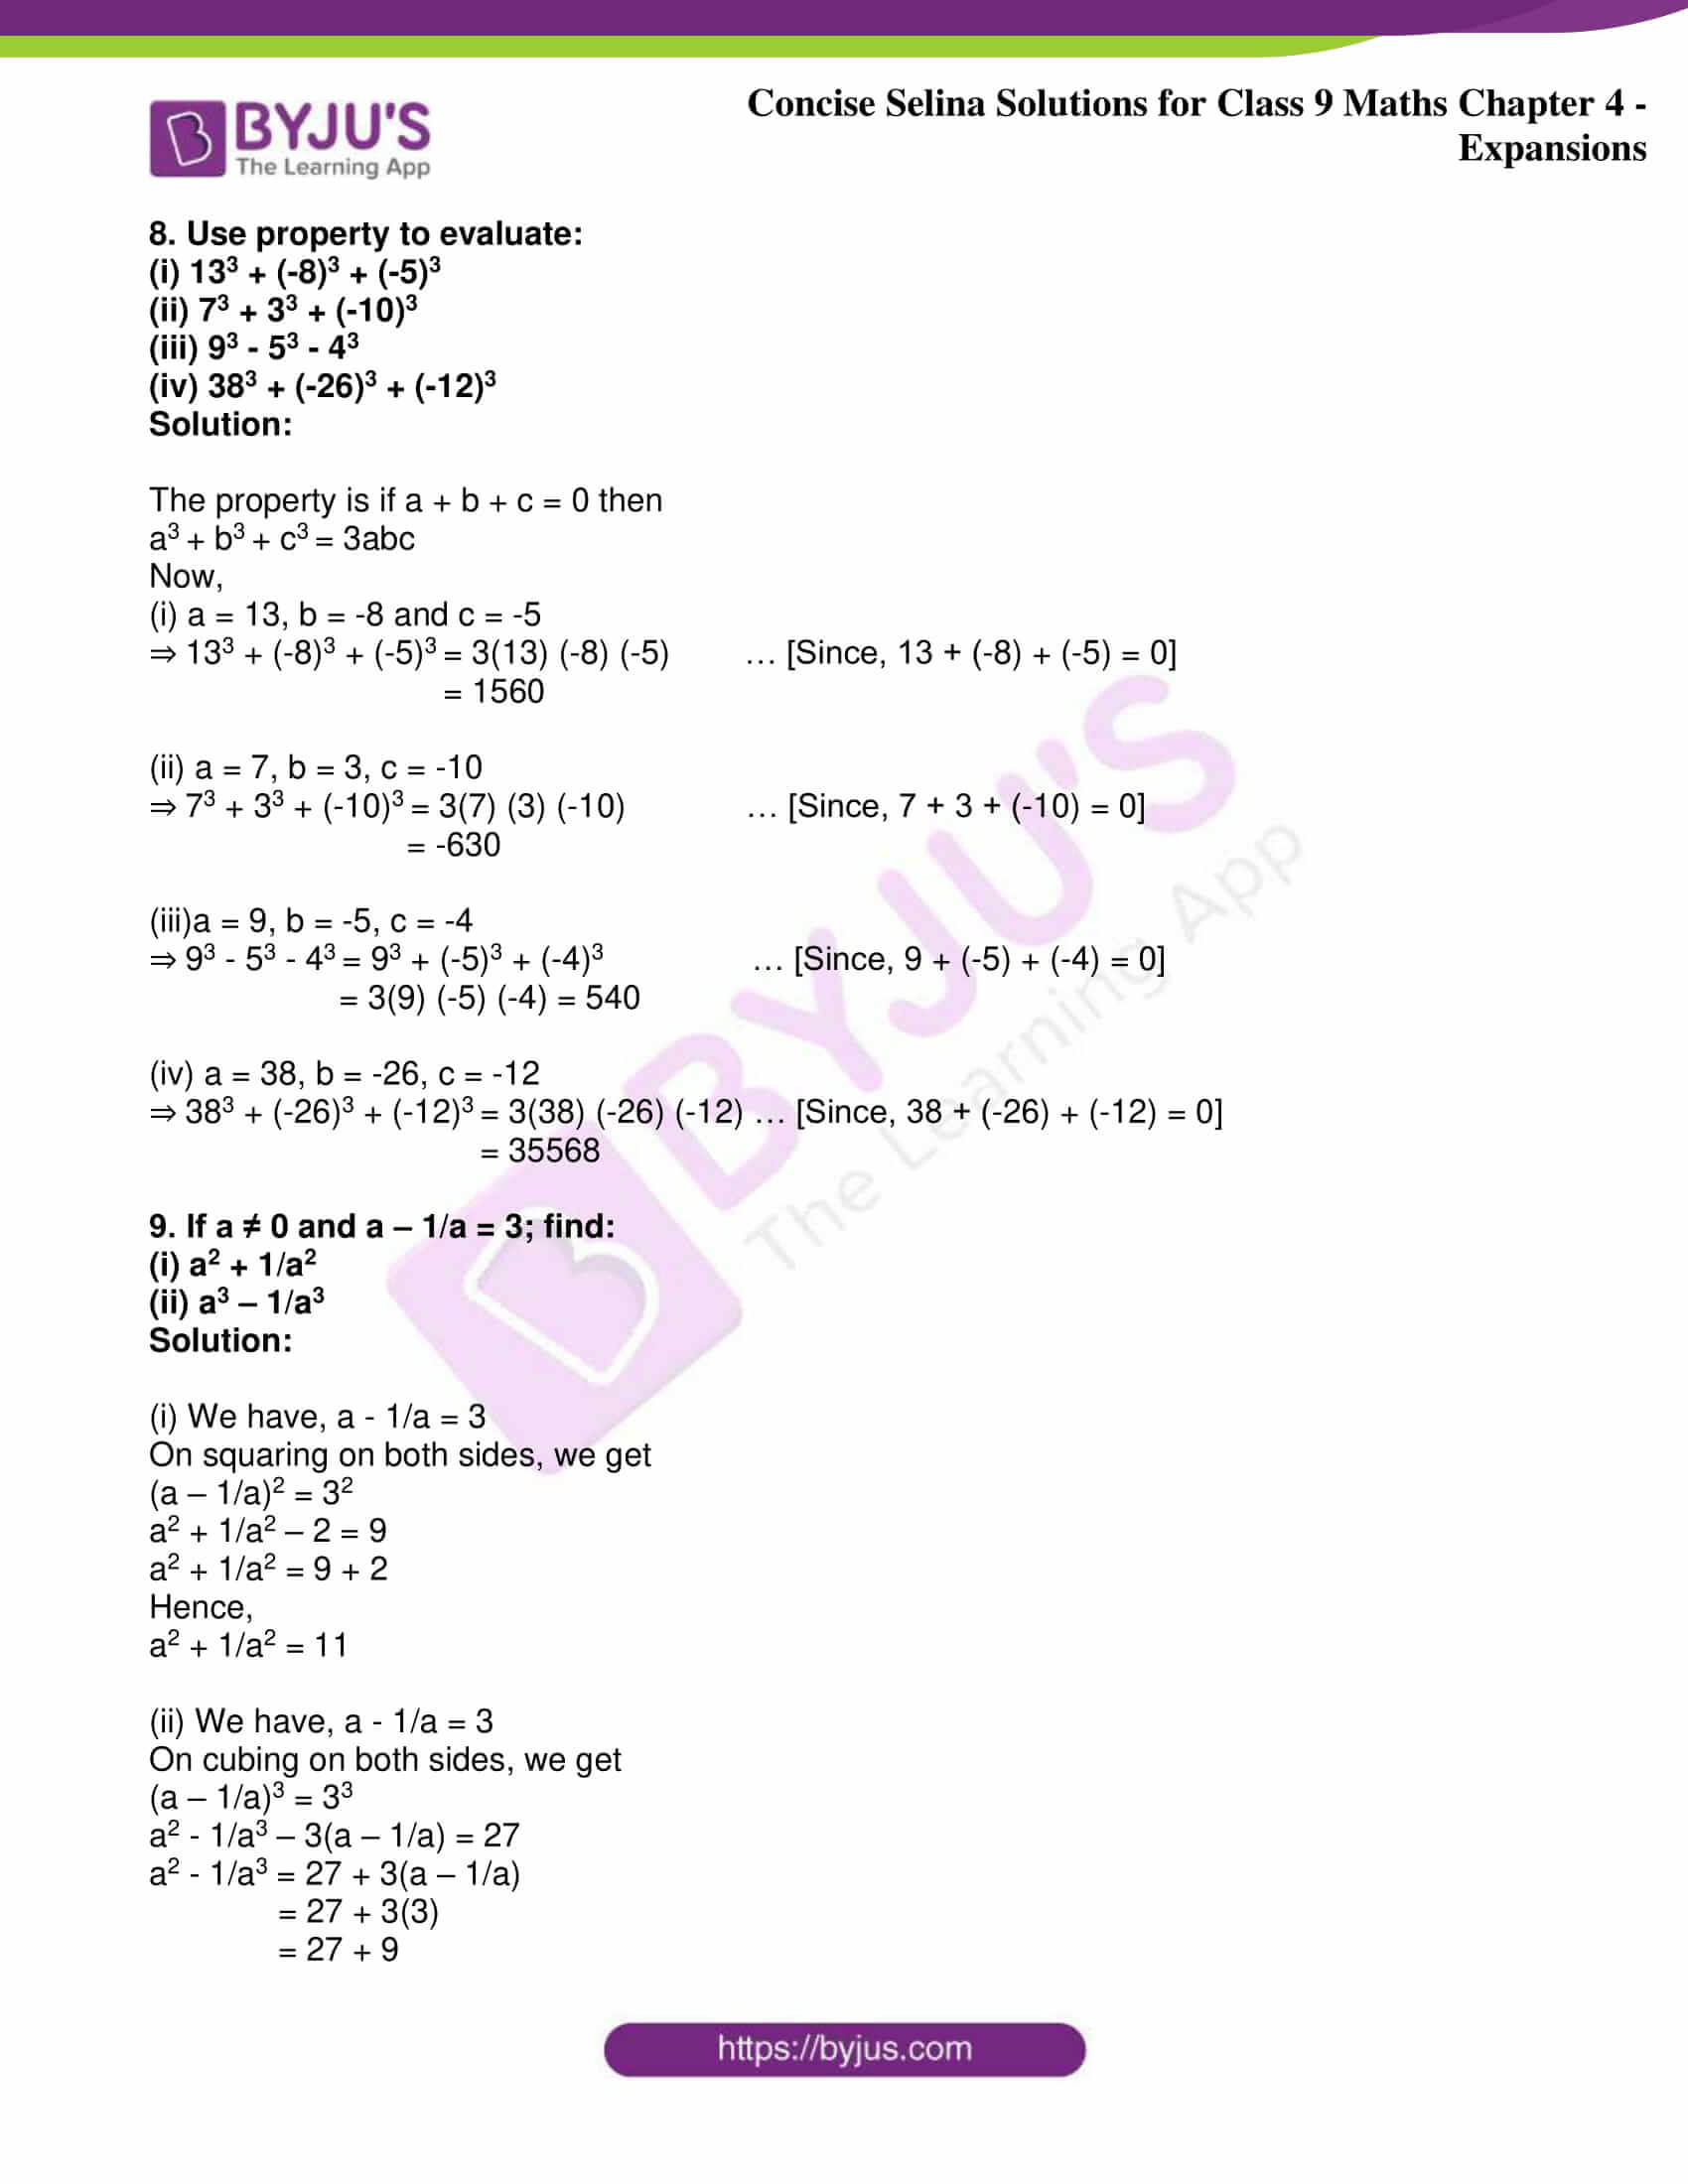 icse class 9 maths may10 selina solutions chapter 4 expansions 13